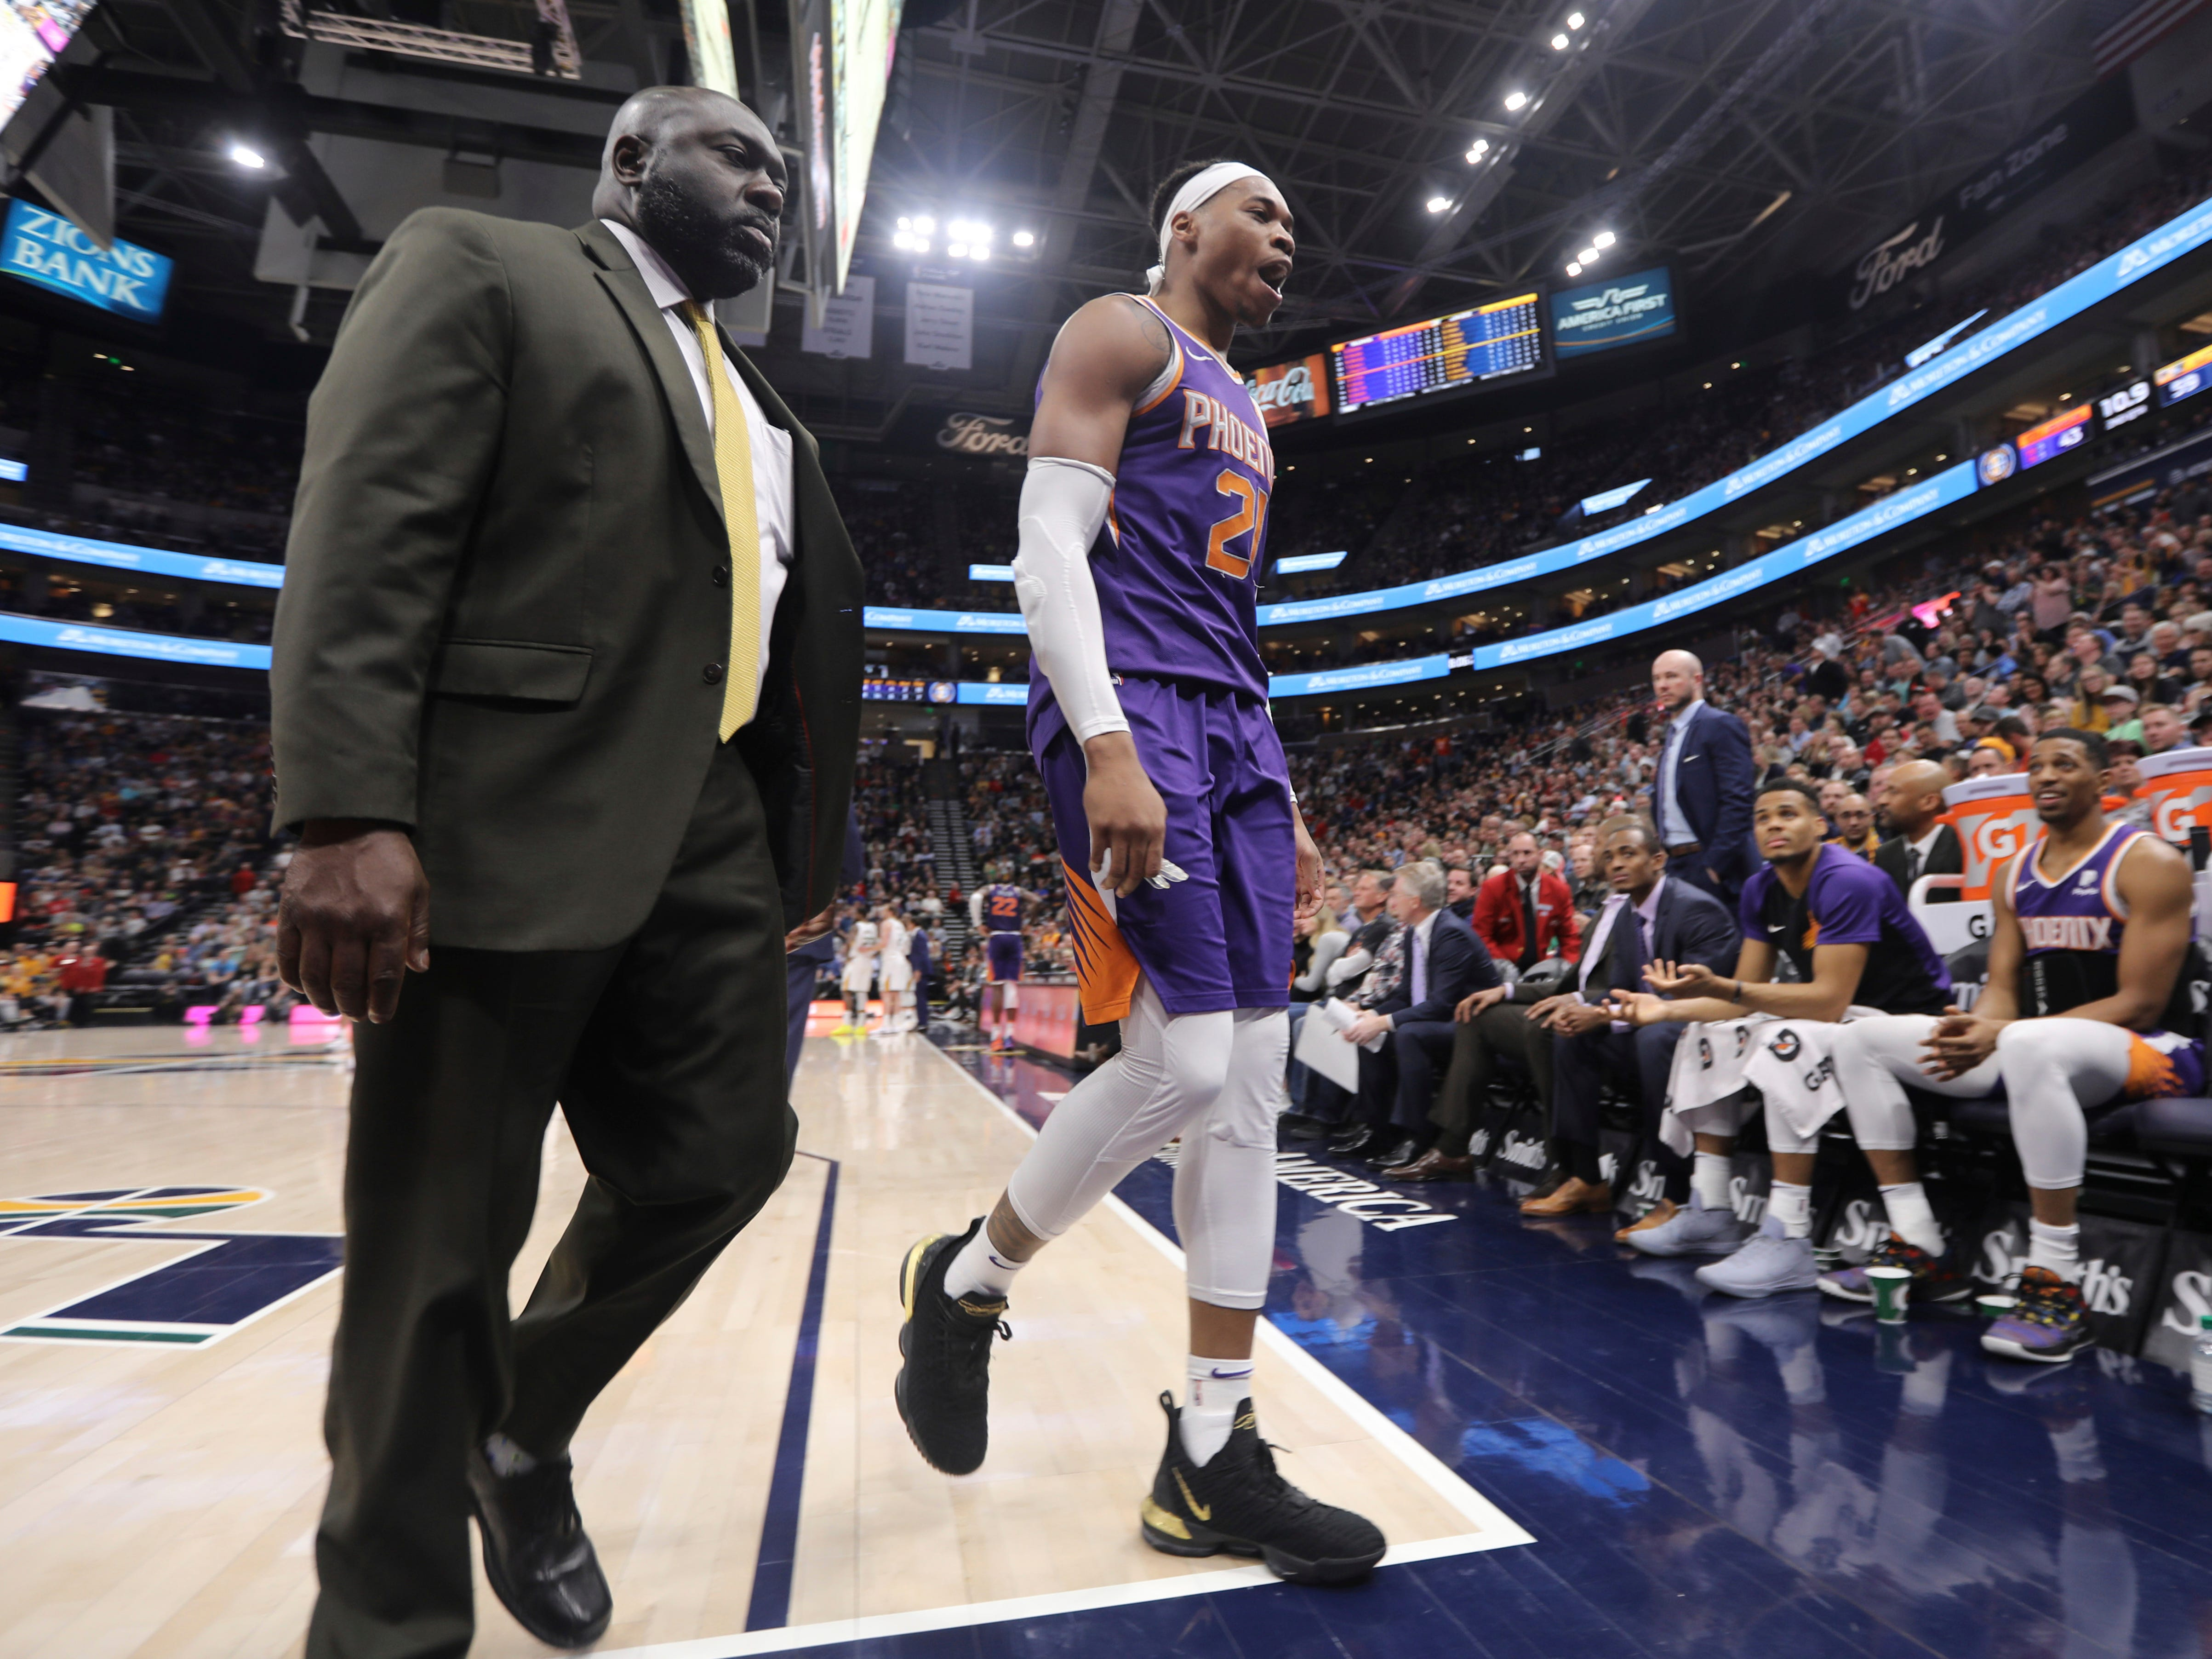 Phoenix Suns forward Richaun Holmes (21) leaves the court after being ejected during the first half of an NBA basketball game against the Utah Jazz, Monday, March 25, 2019, in Salt Lake City.